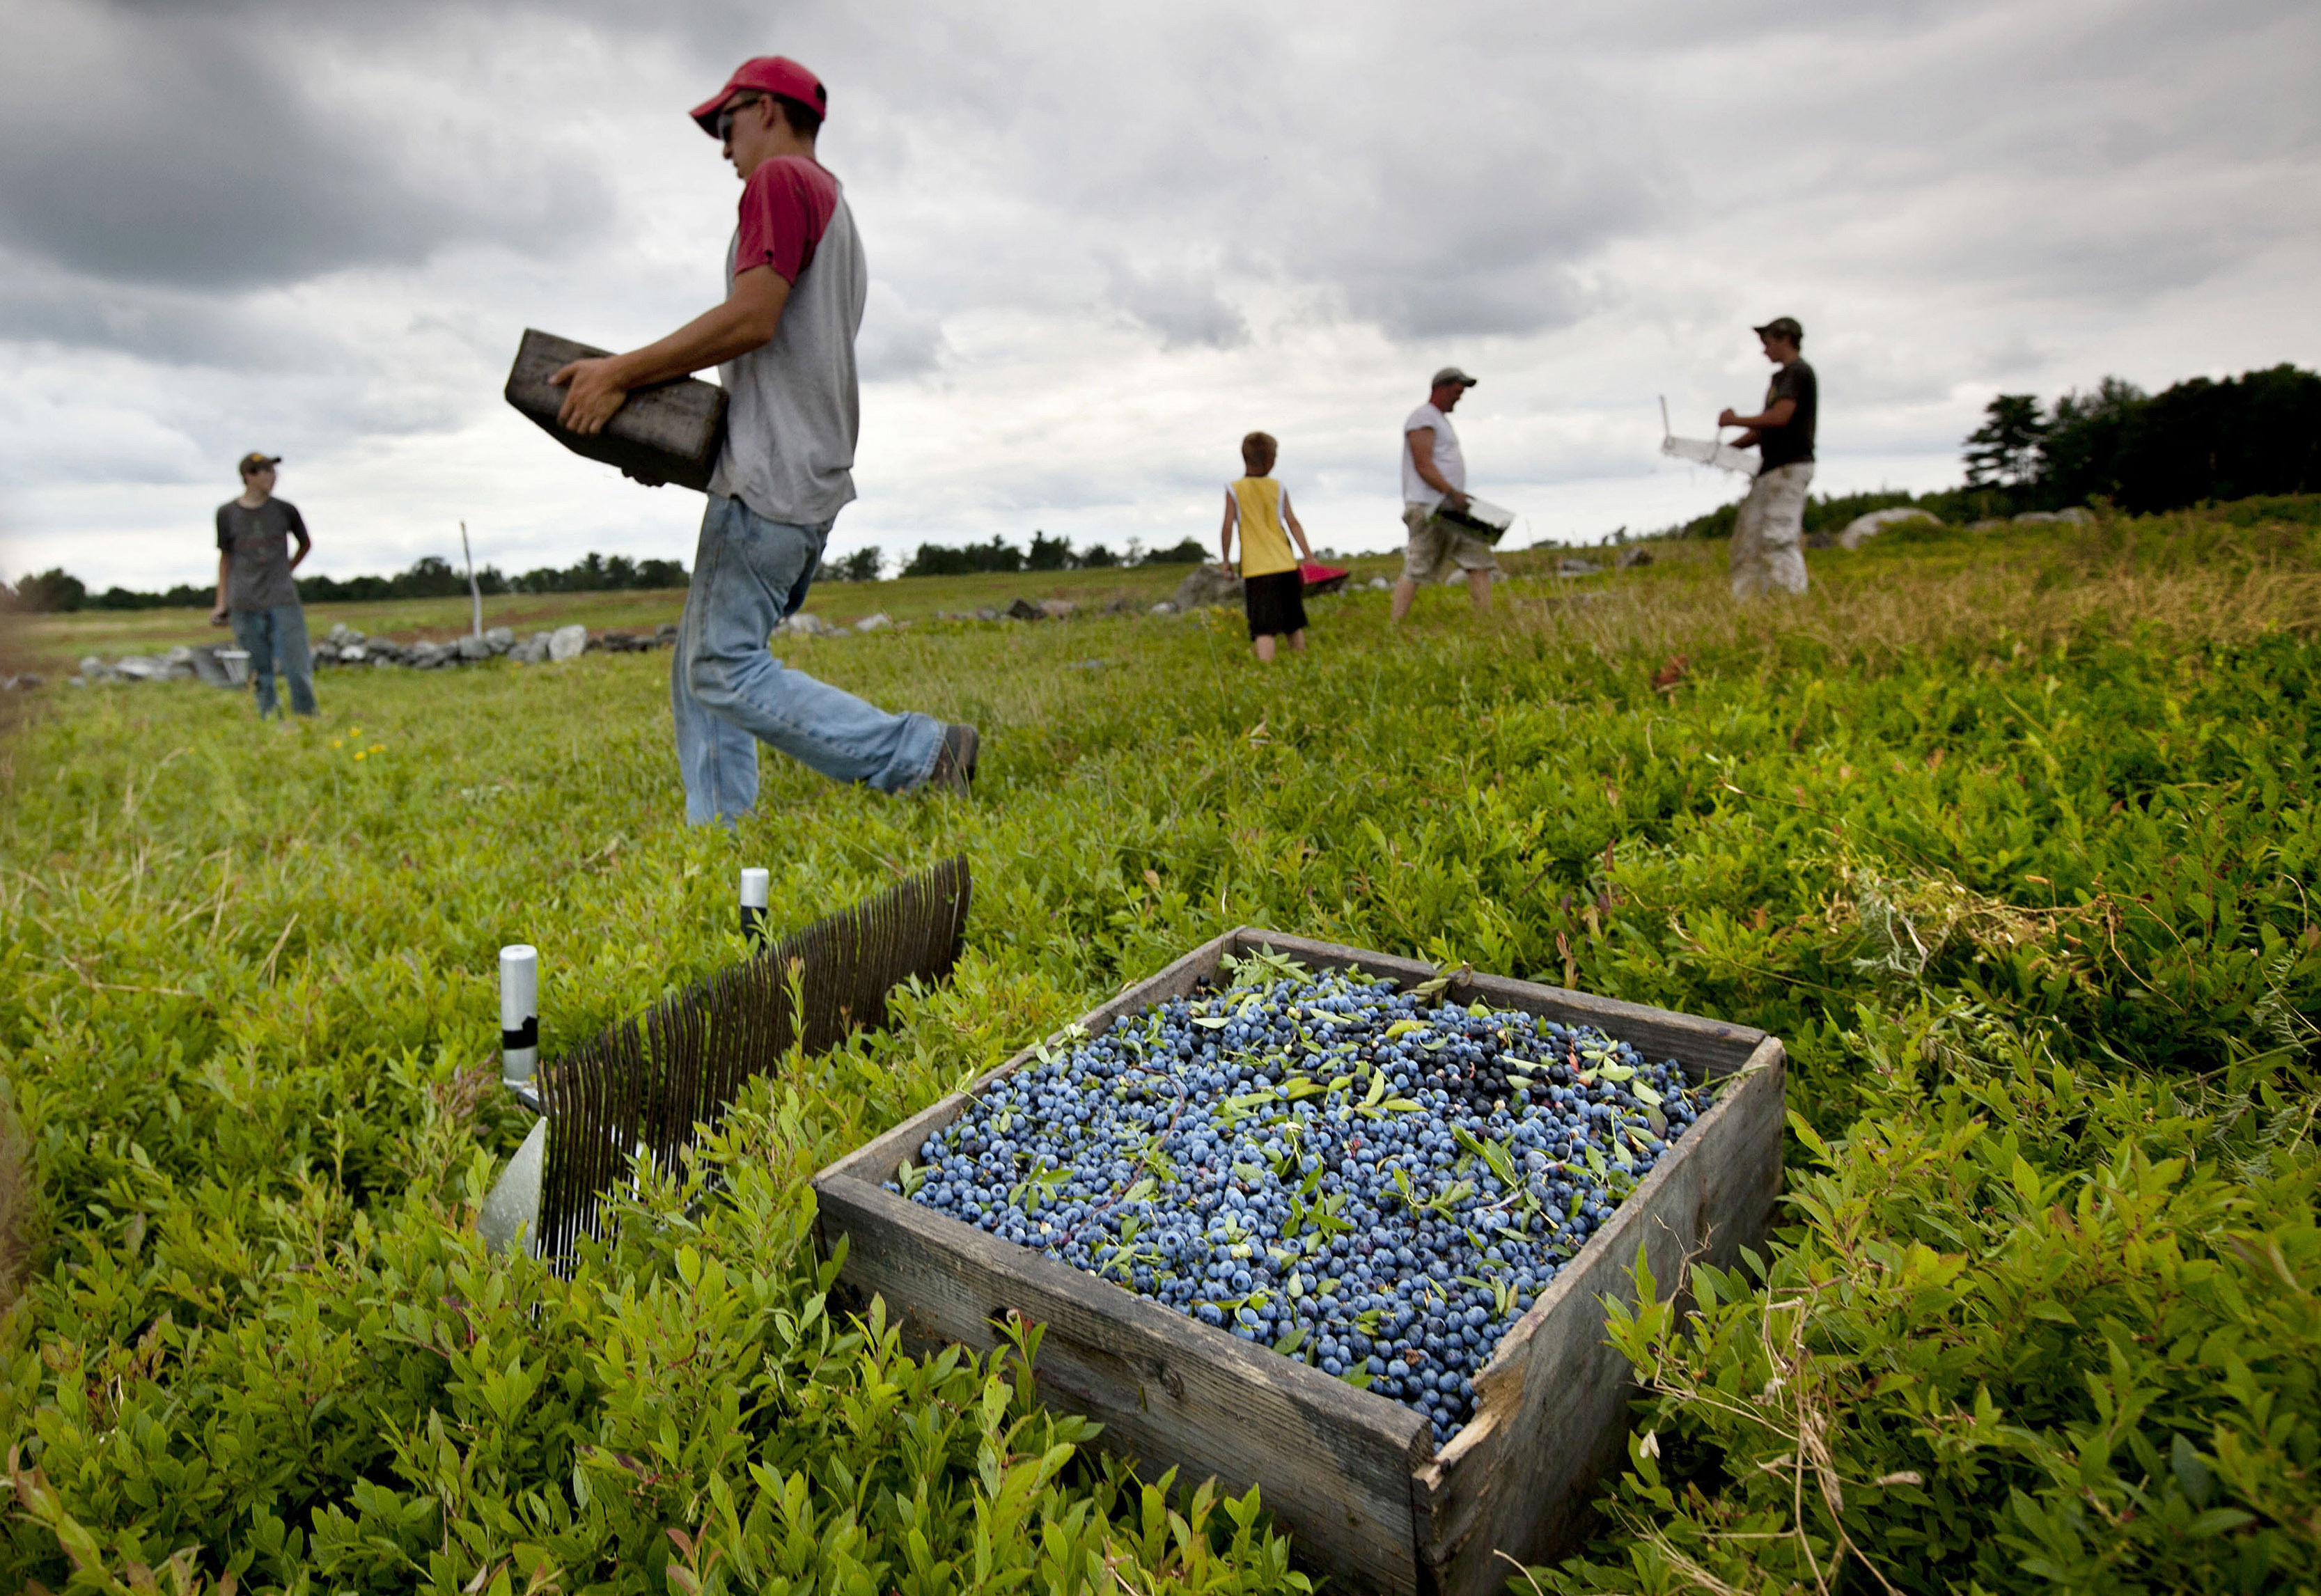 In this July 27, 2012, file photo, workers harvest wild blueberries at the Ridgeberry Farm in Appleton. A trade group said the state's wild blueberry crop fell sharply during the summer of 2017, to land below 100 million pounds for the first time in four years. AP WIREPHOTO